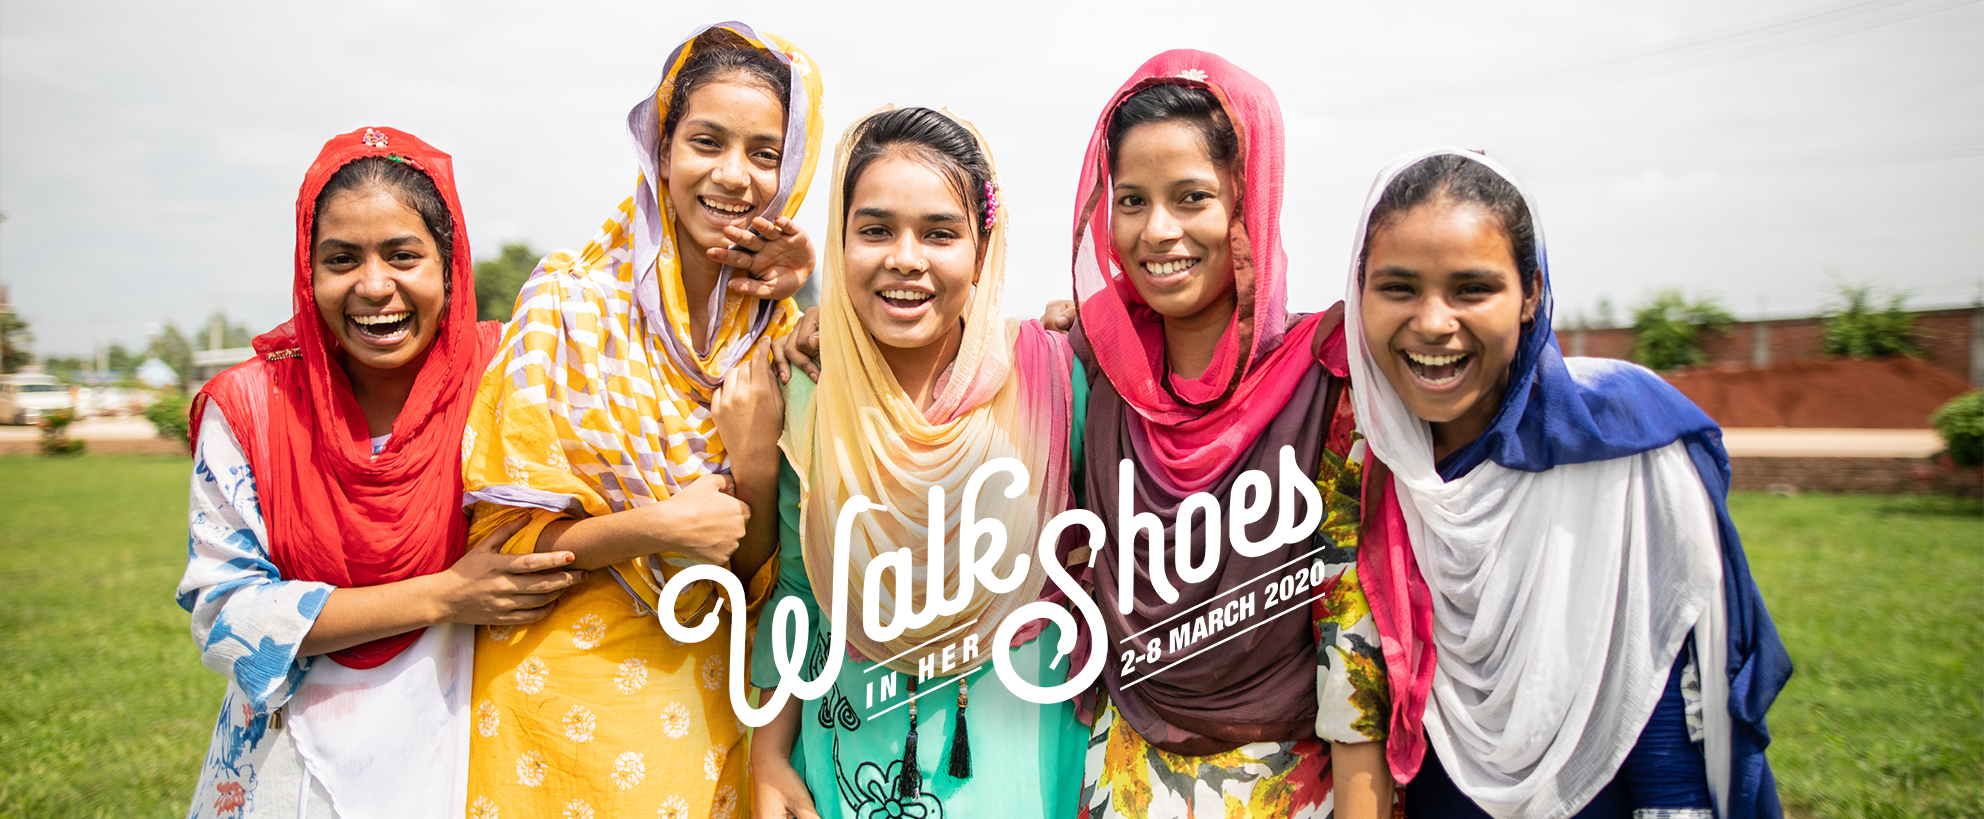 Walk in her Shoes logo over image of five girls smiling.